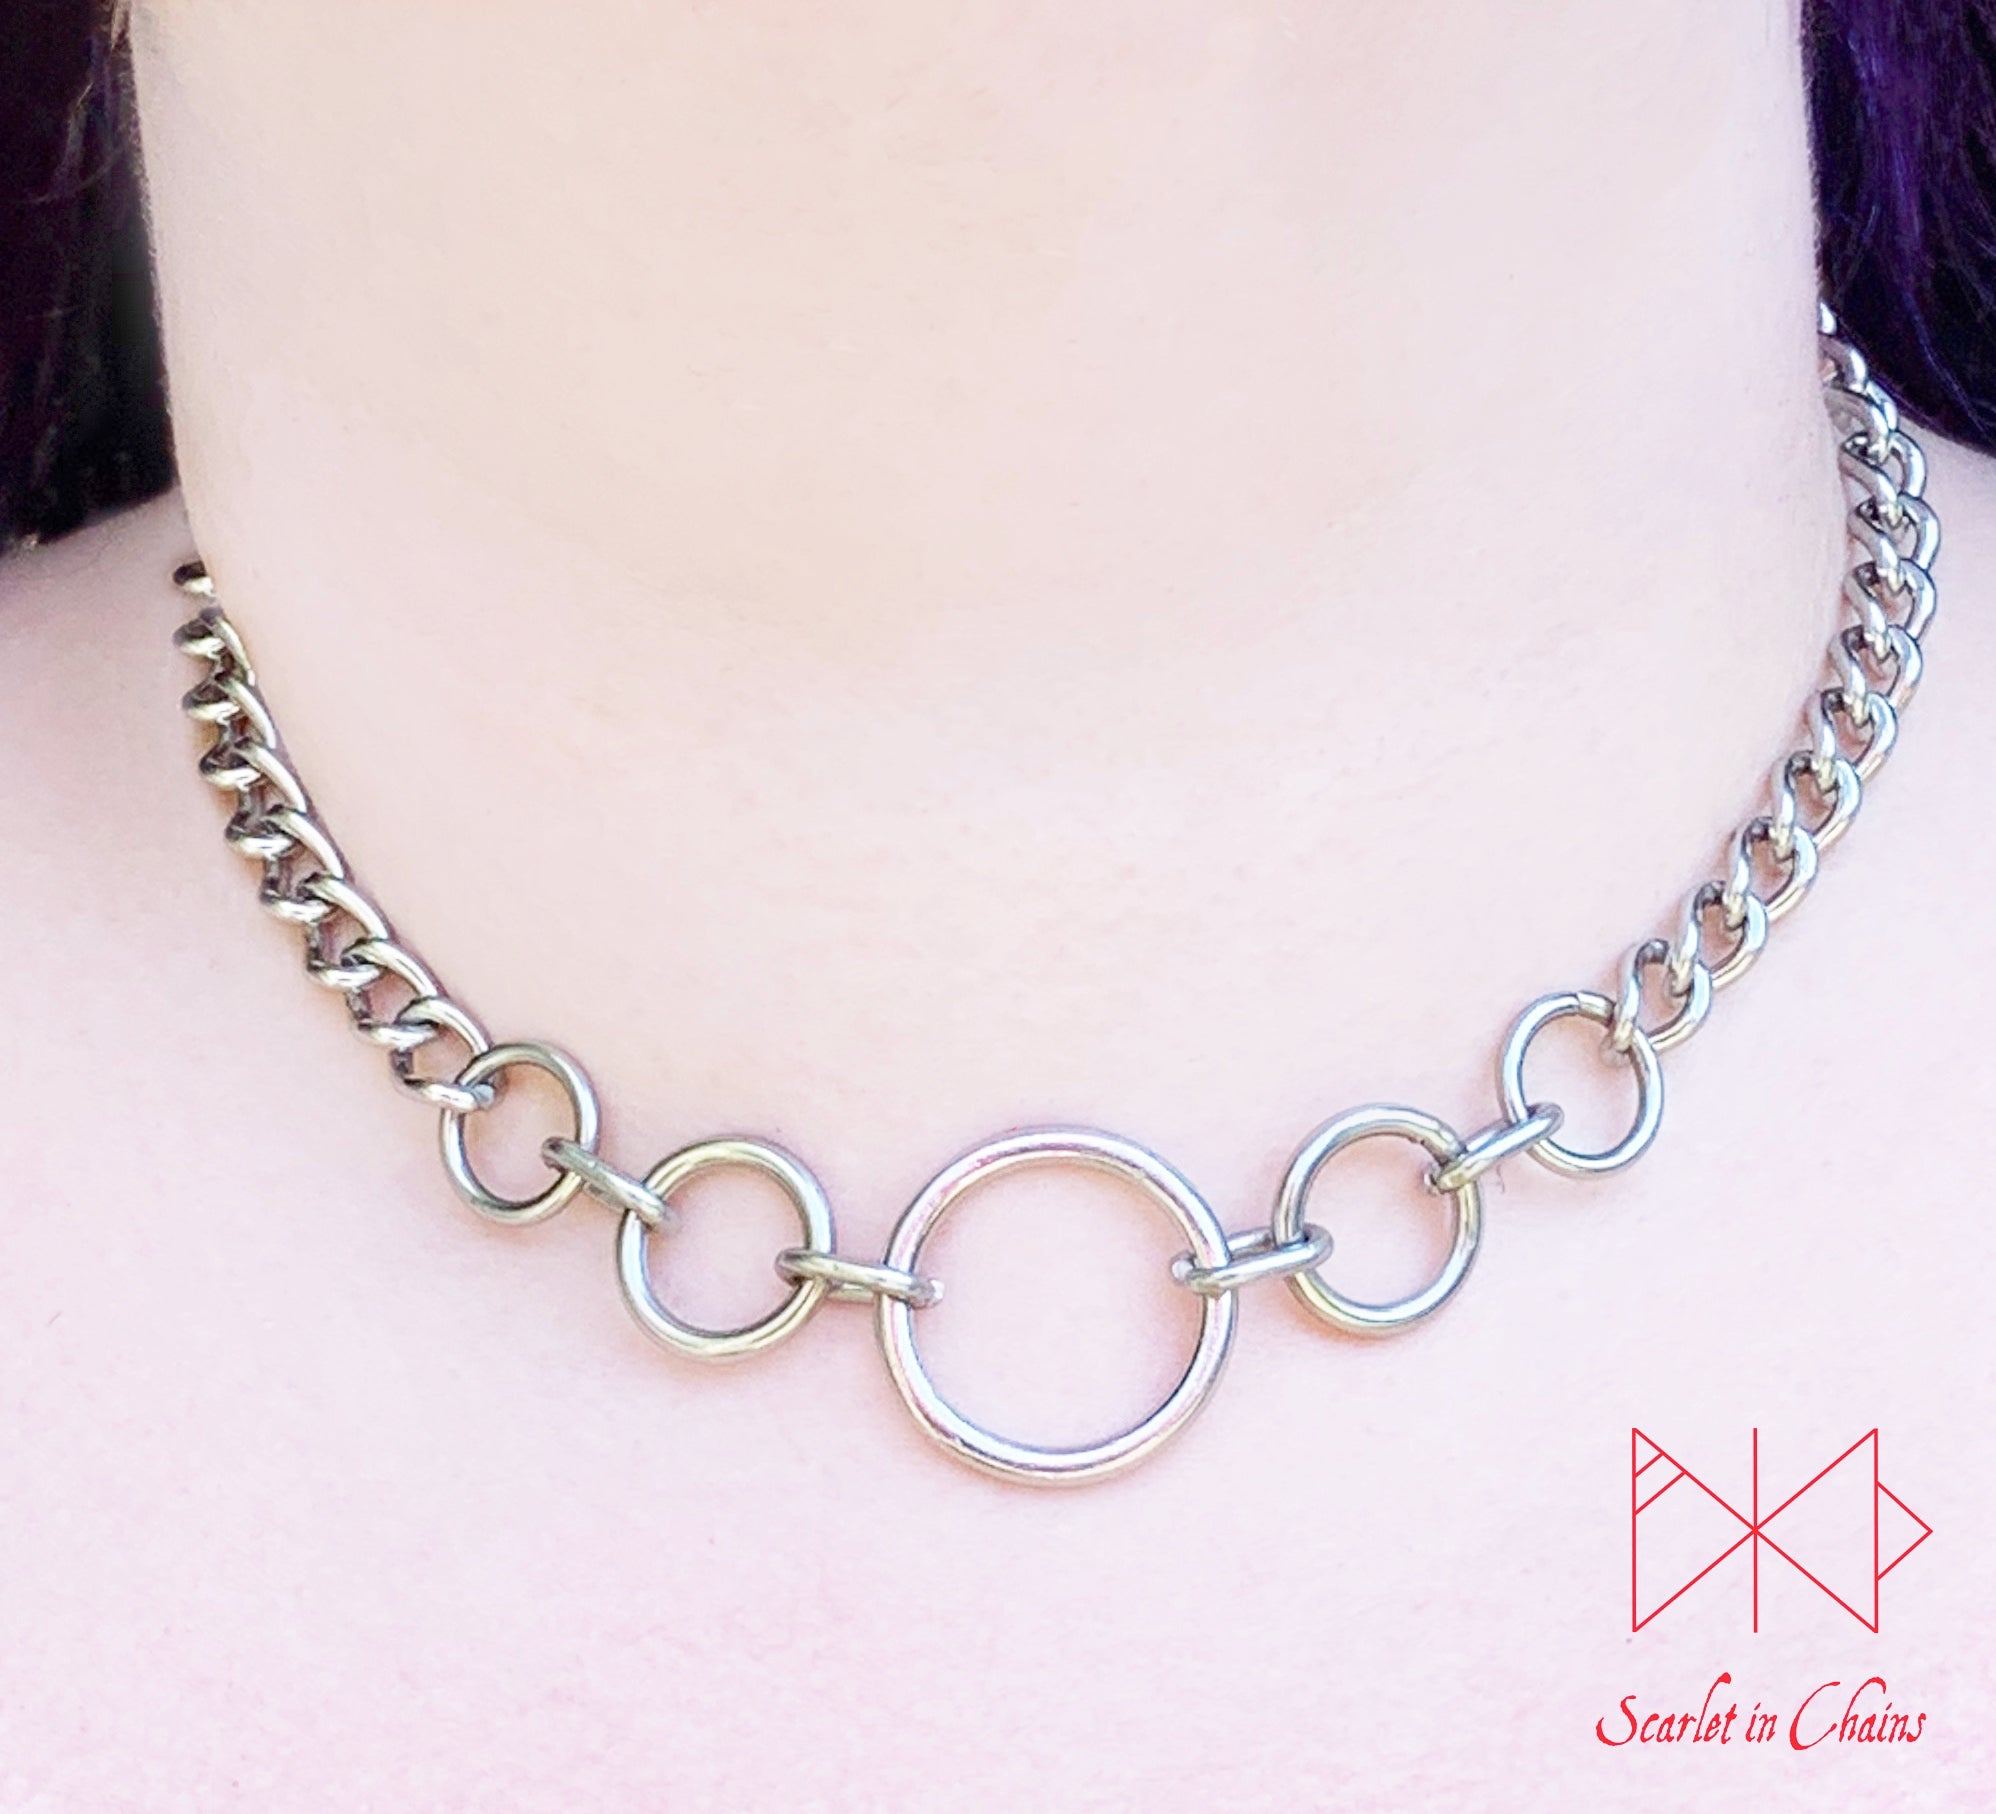 Stainless steel Luna Phase chain choker with multiple o rings in reducing sizes indicating a moon phase pattern. Shown worn with new links